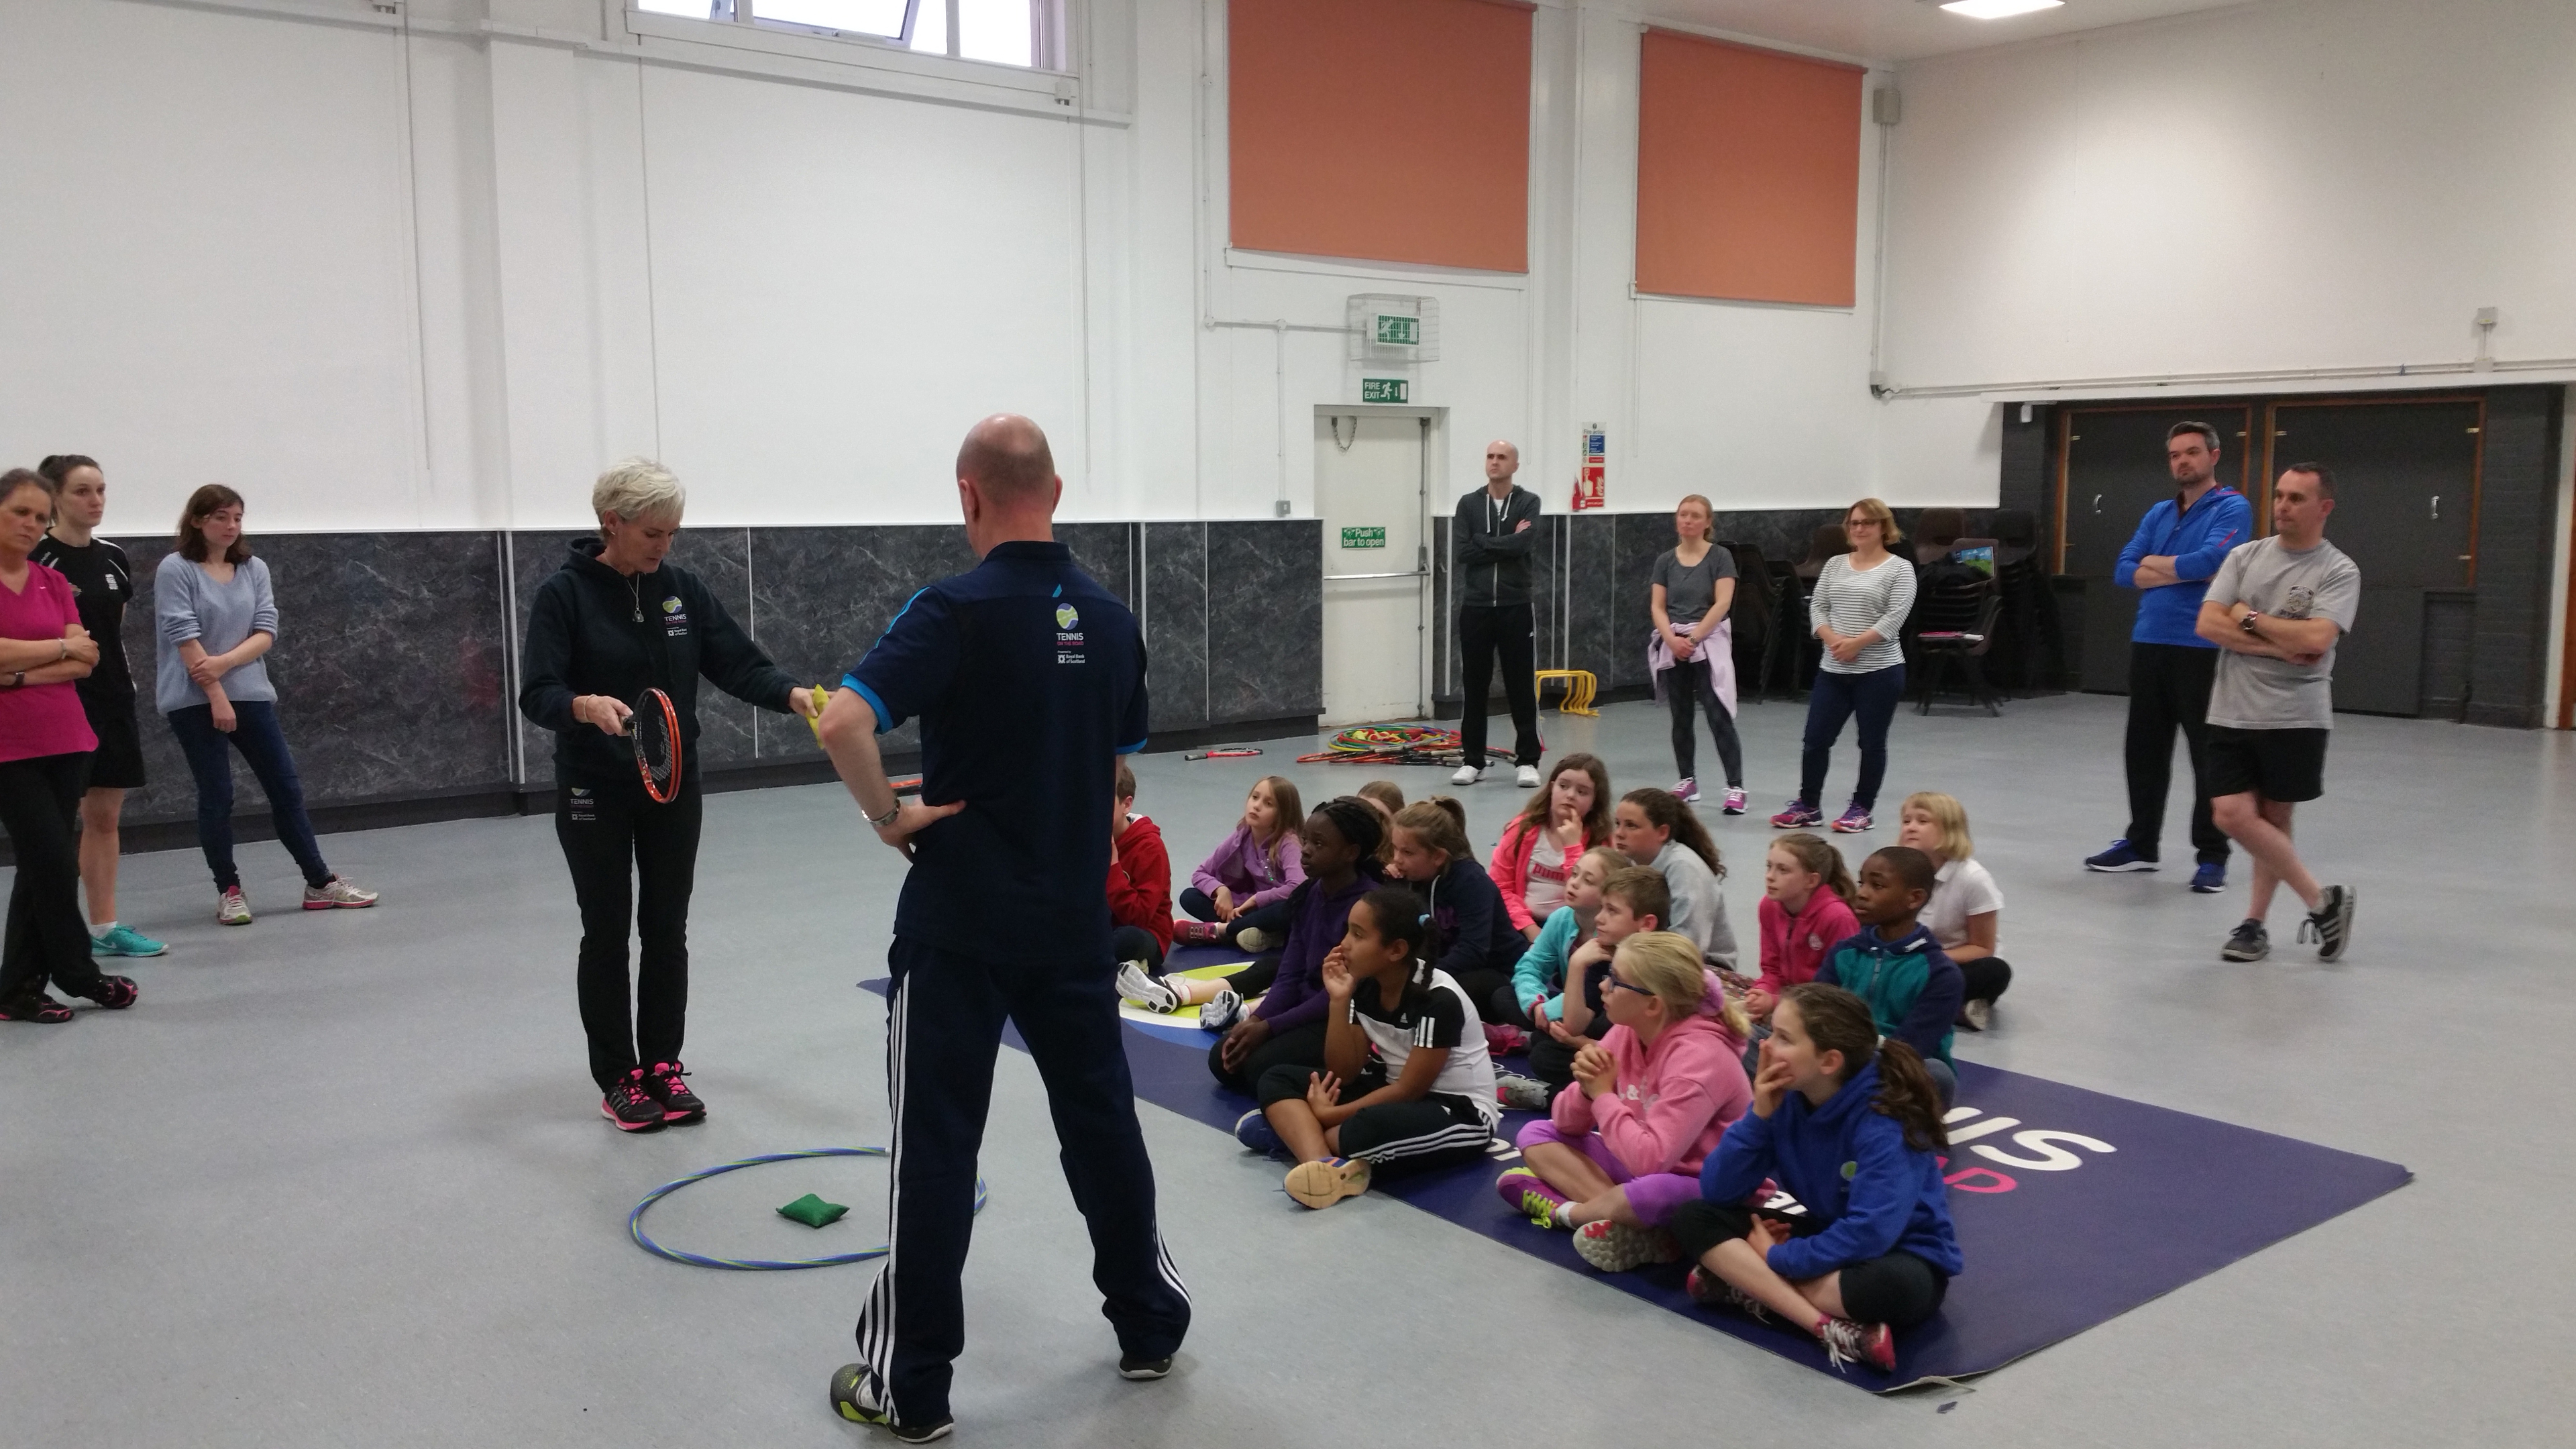 Tennis coach Judy Murray serves up a lesson at Aberdeen's Inchgarth Community Centre.